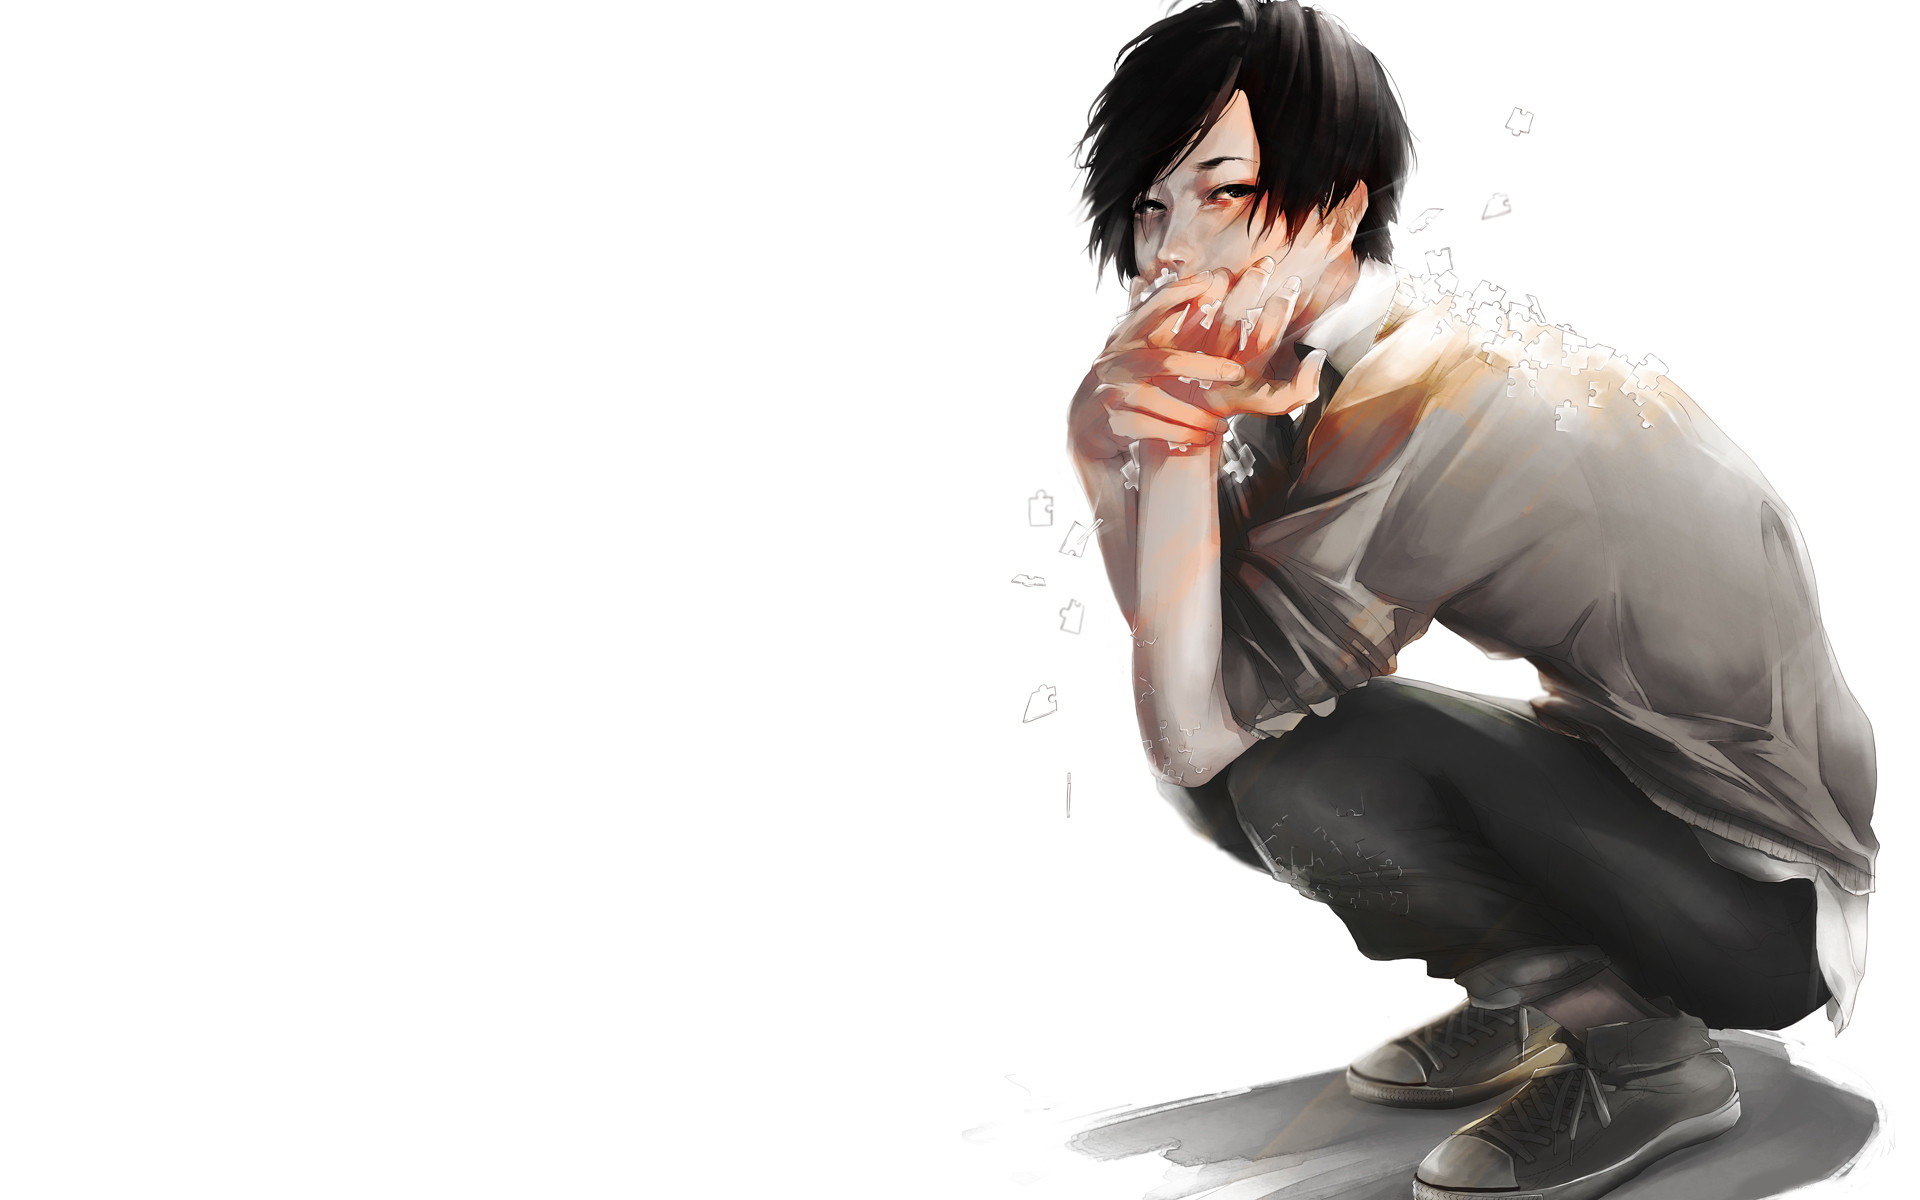 Stunning Anime Wallpaper Sad Boy HD Images